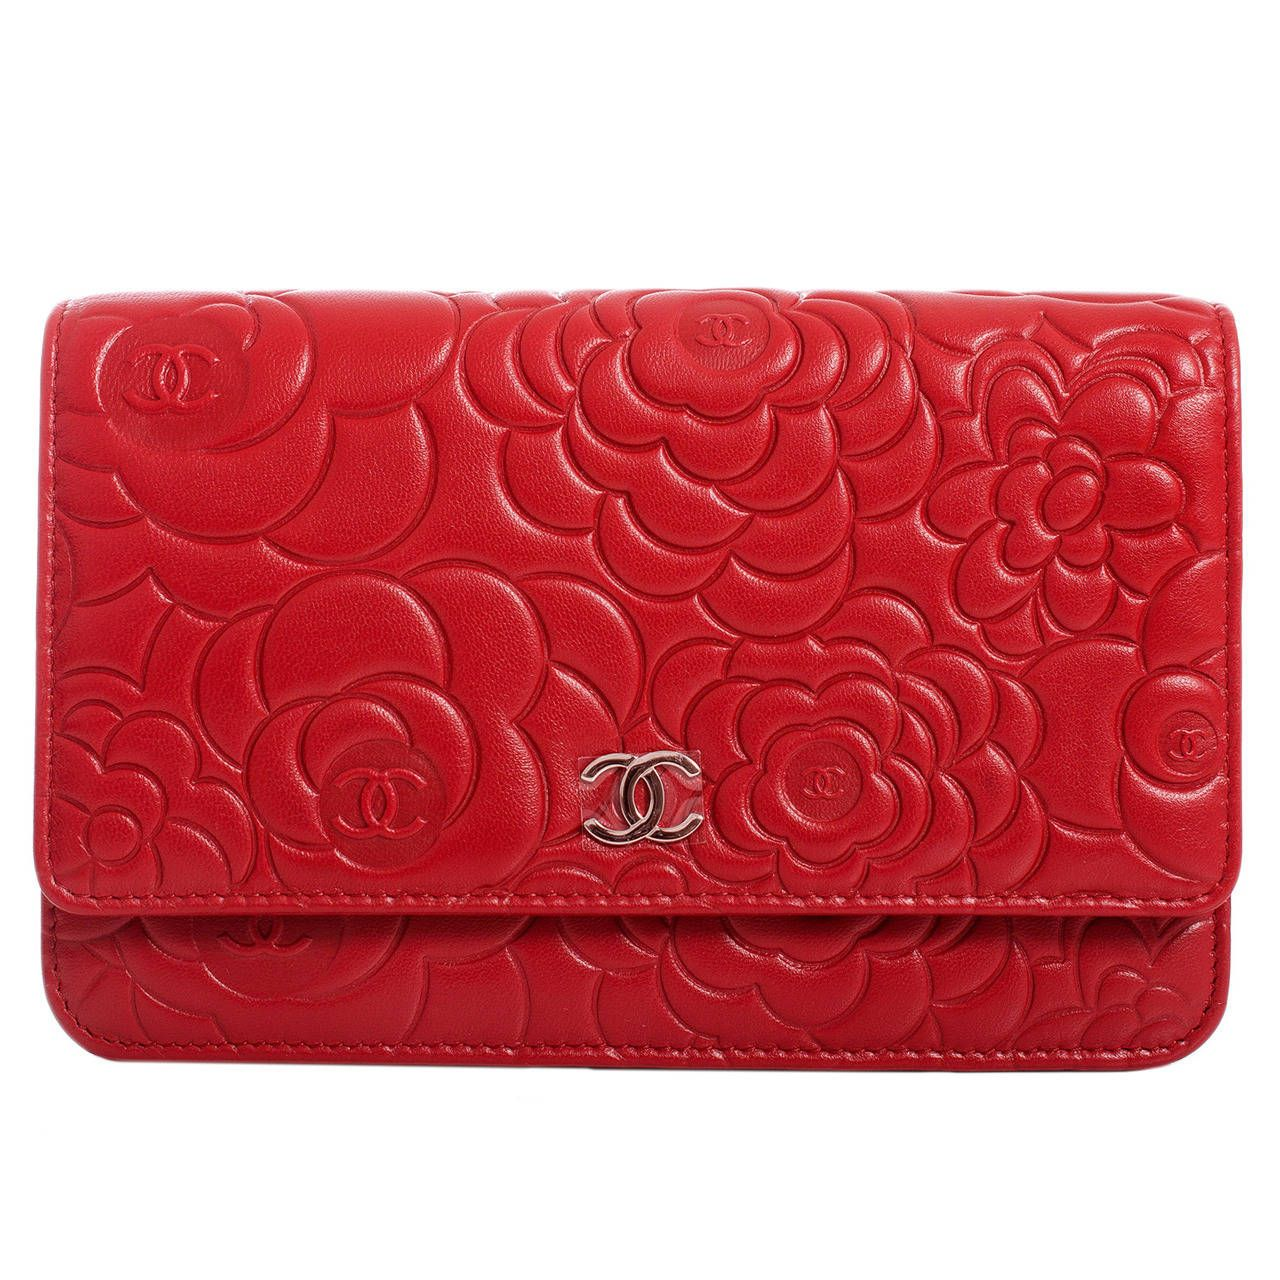 a7db419dcdec0f Chanel Red Lambskin Camellia Wallet On Chain (WOC) | From a collection of  rare